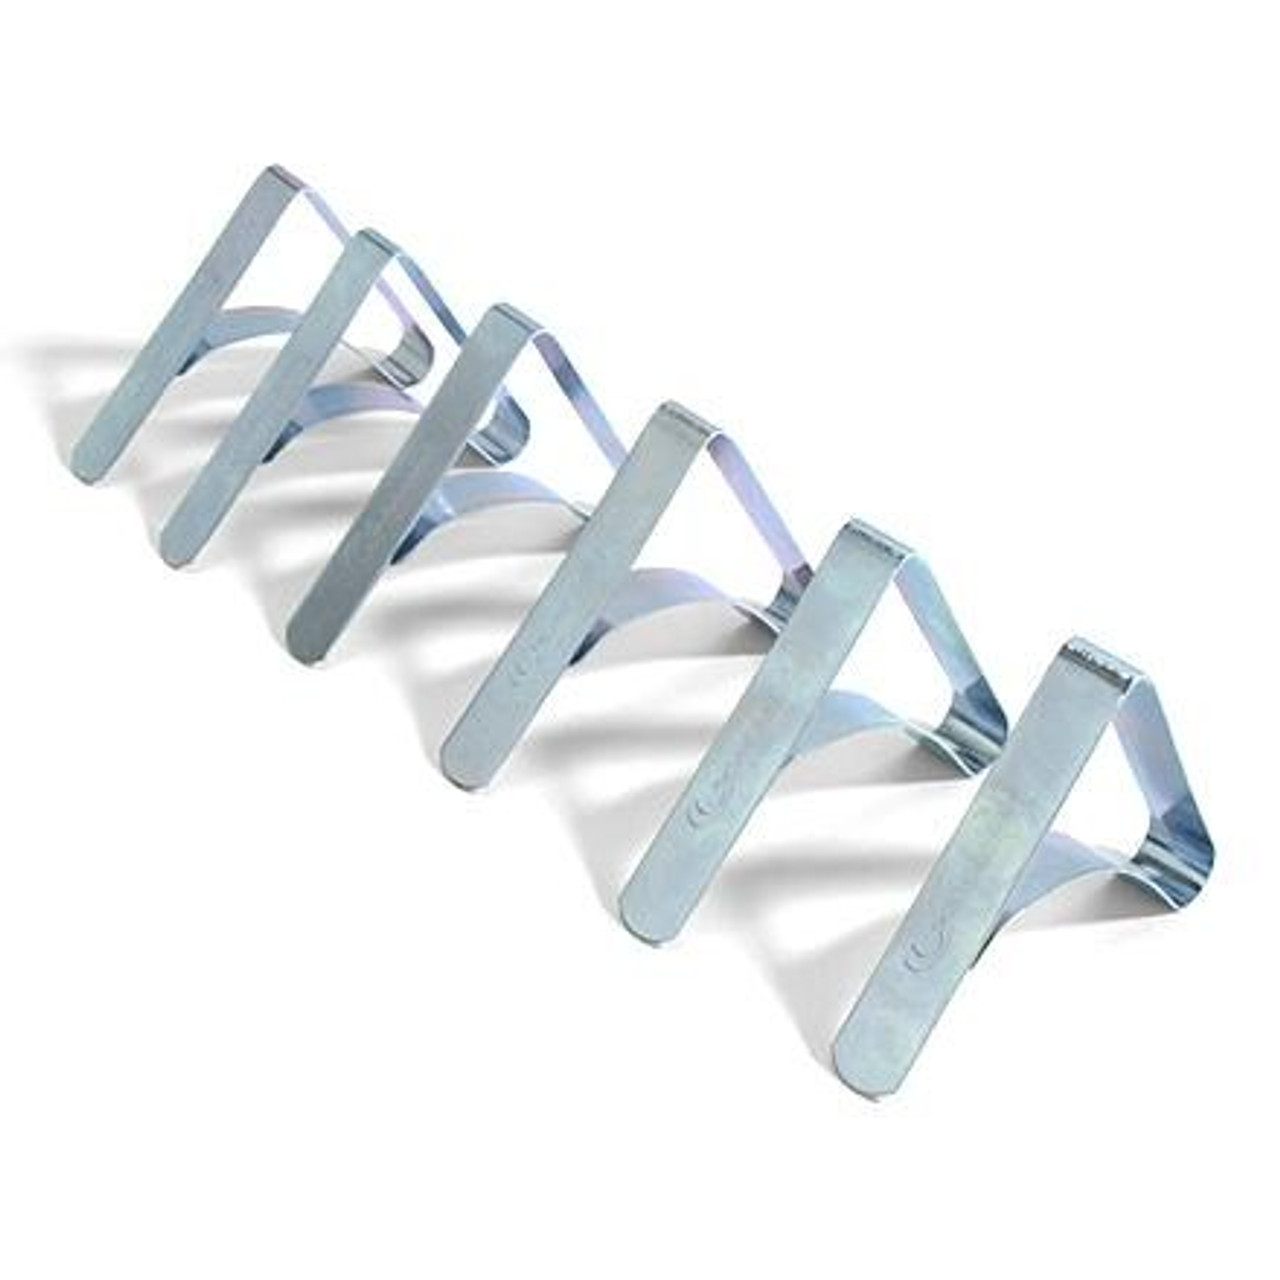 6pk TABLECLOTH CLAMPS - (03-1013) SHOWN OPENED